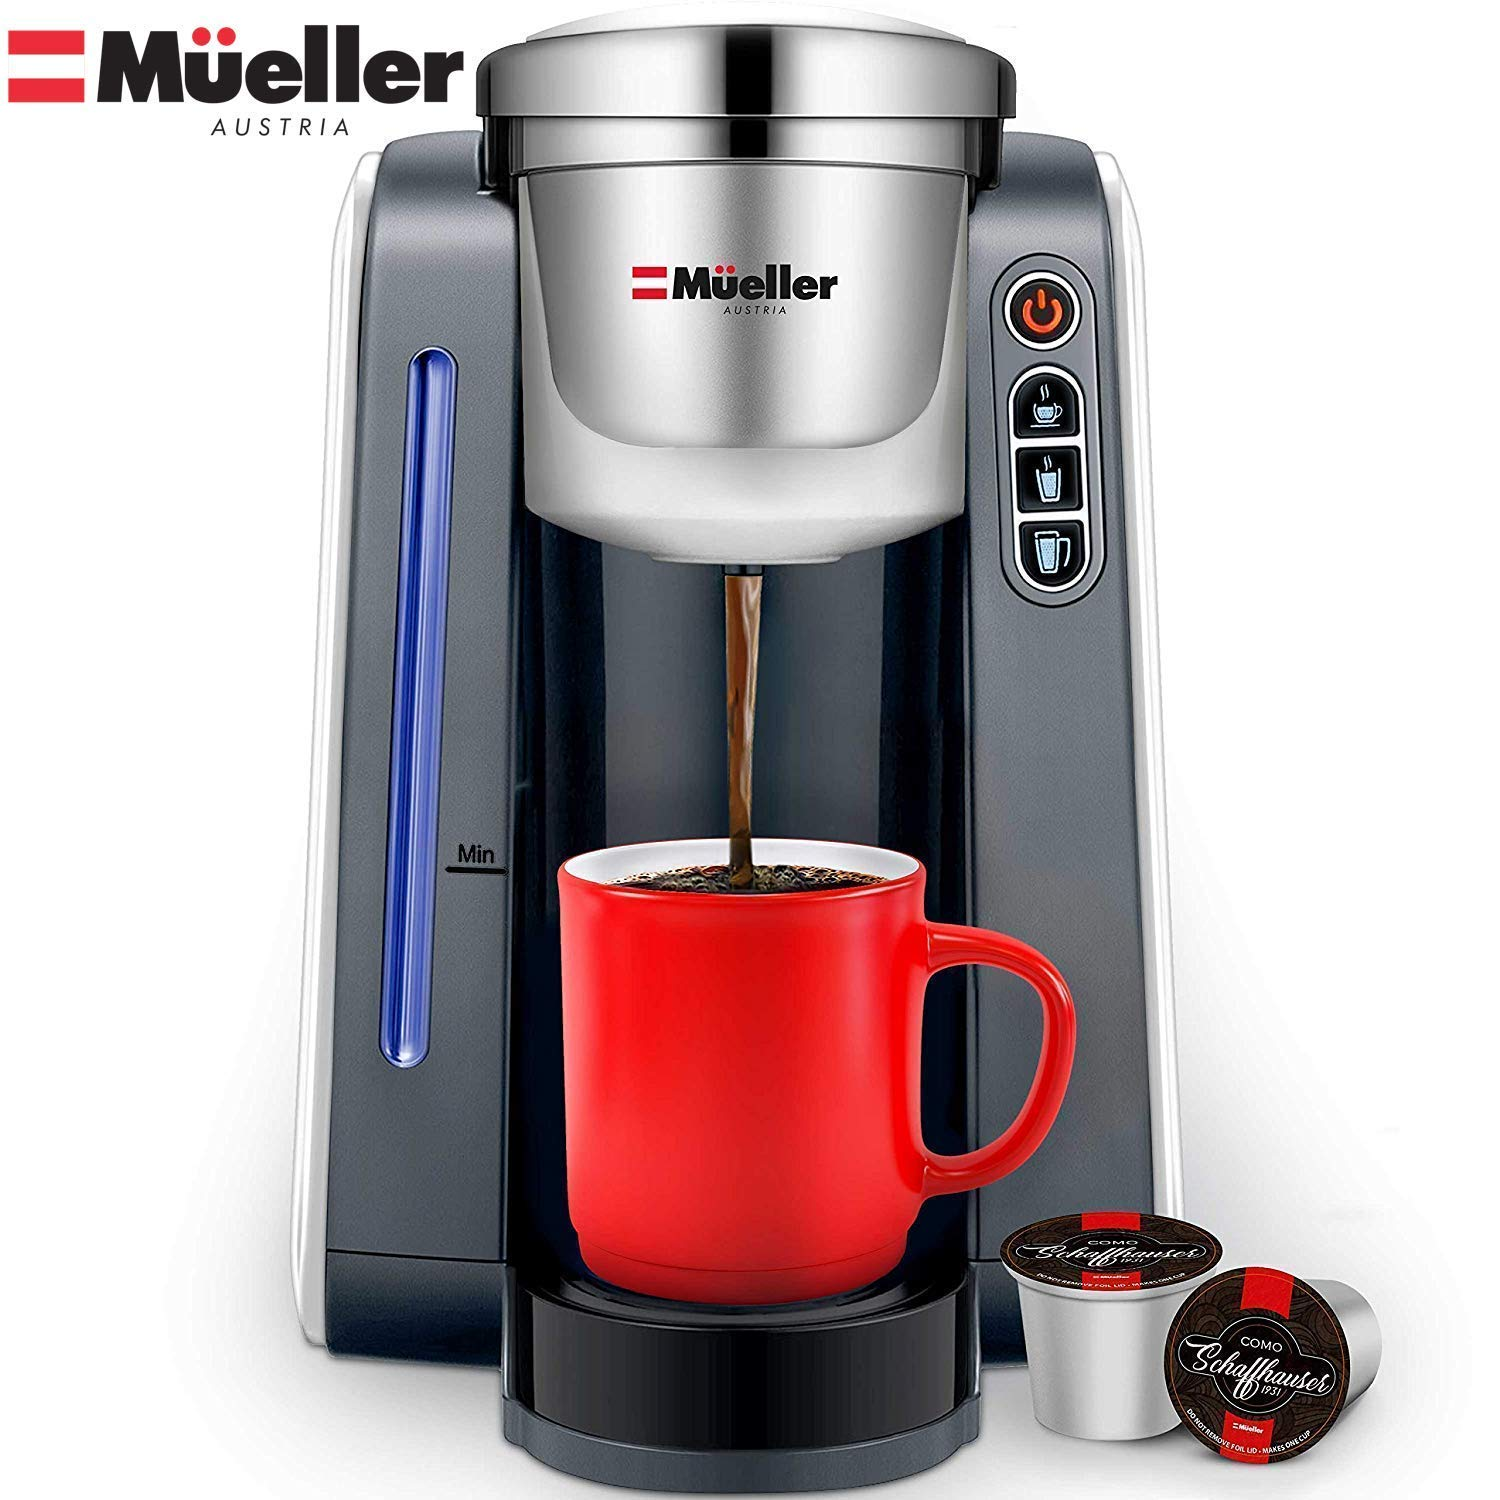 Mueller Machine including Technology Removable